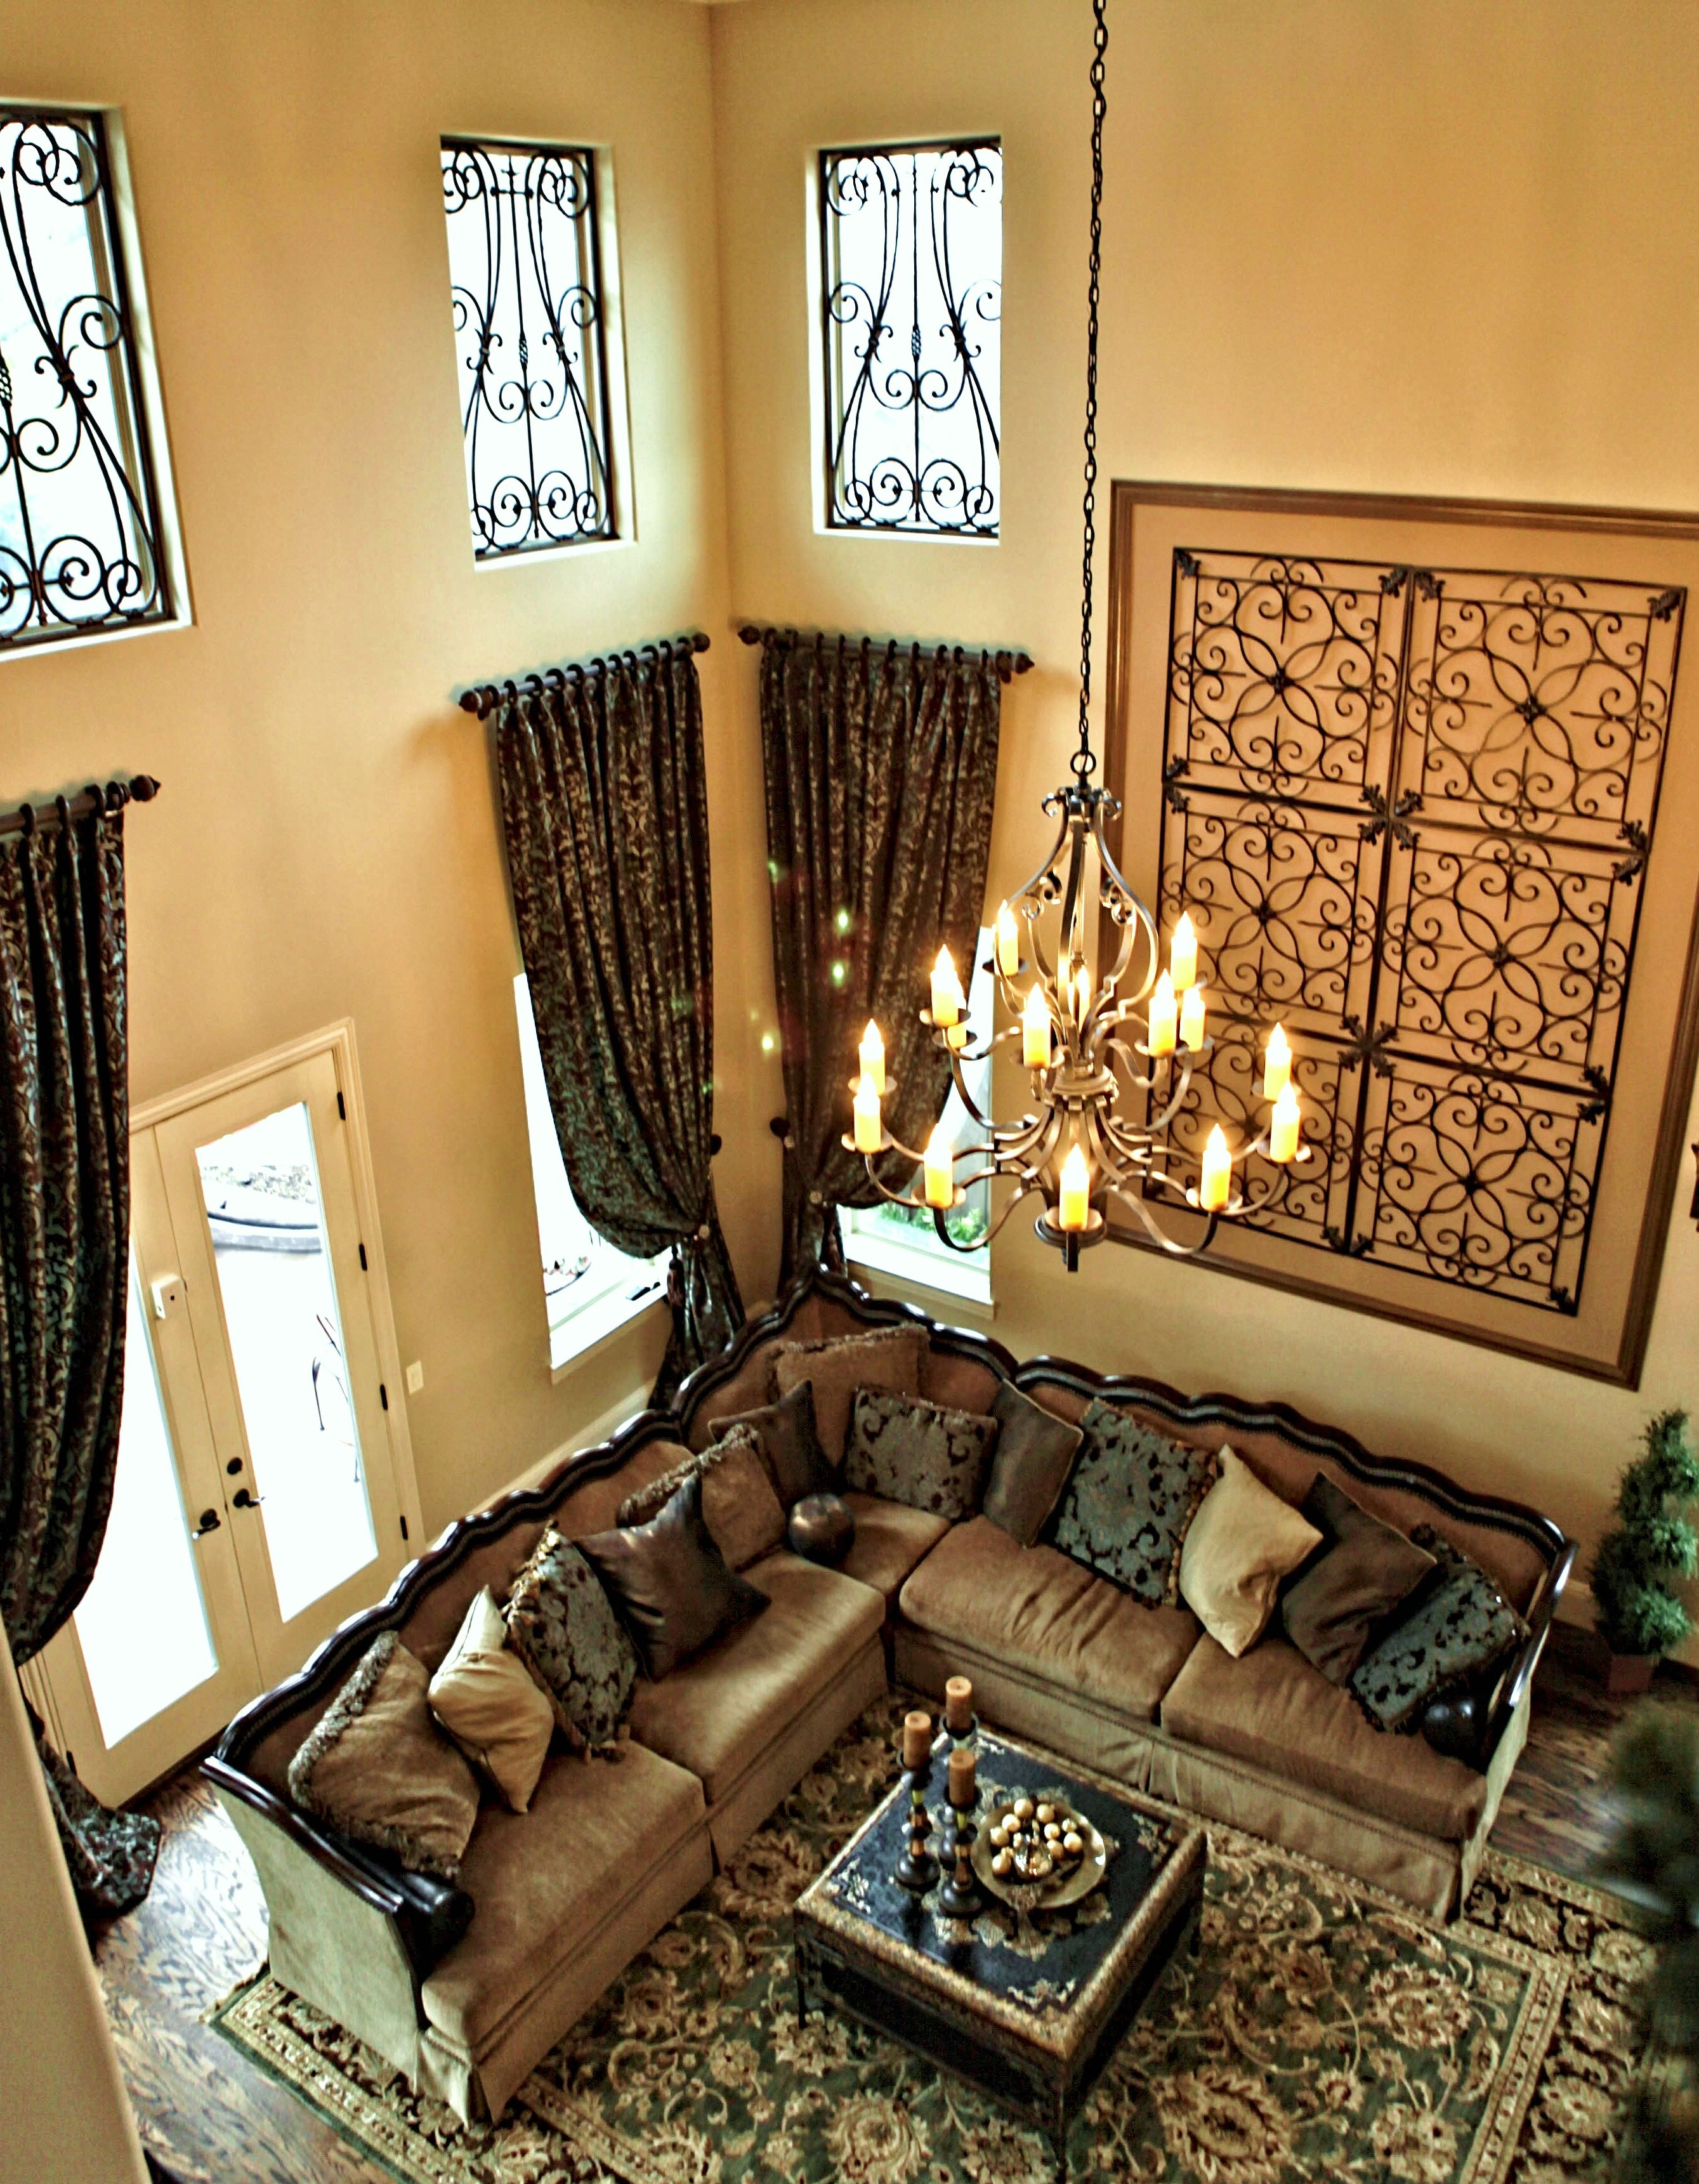 Two Story Traditional Living Room With Faux Iron Window Inserts Custom Draperies And Wall Art